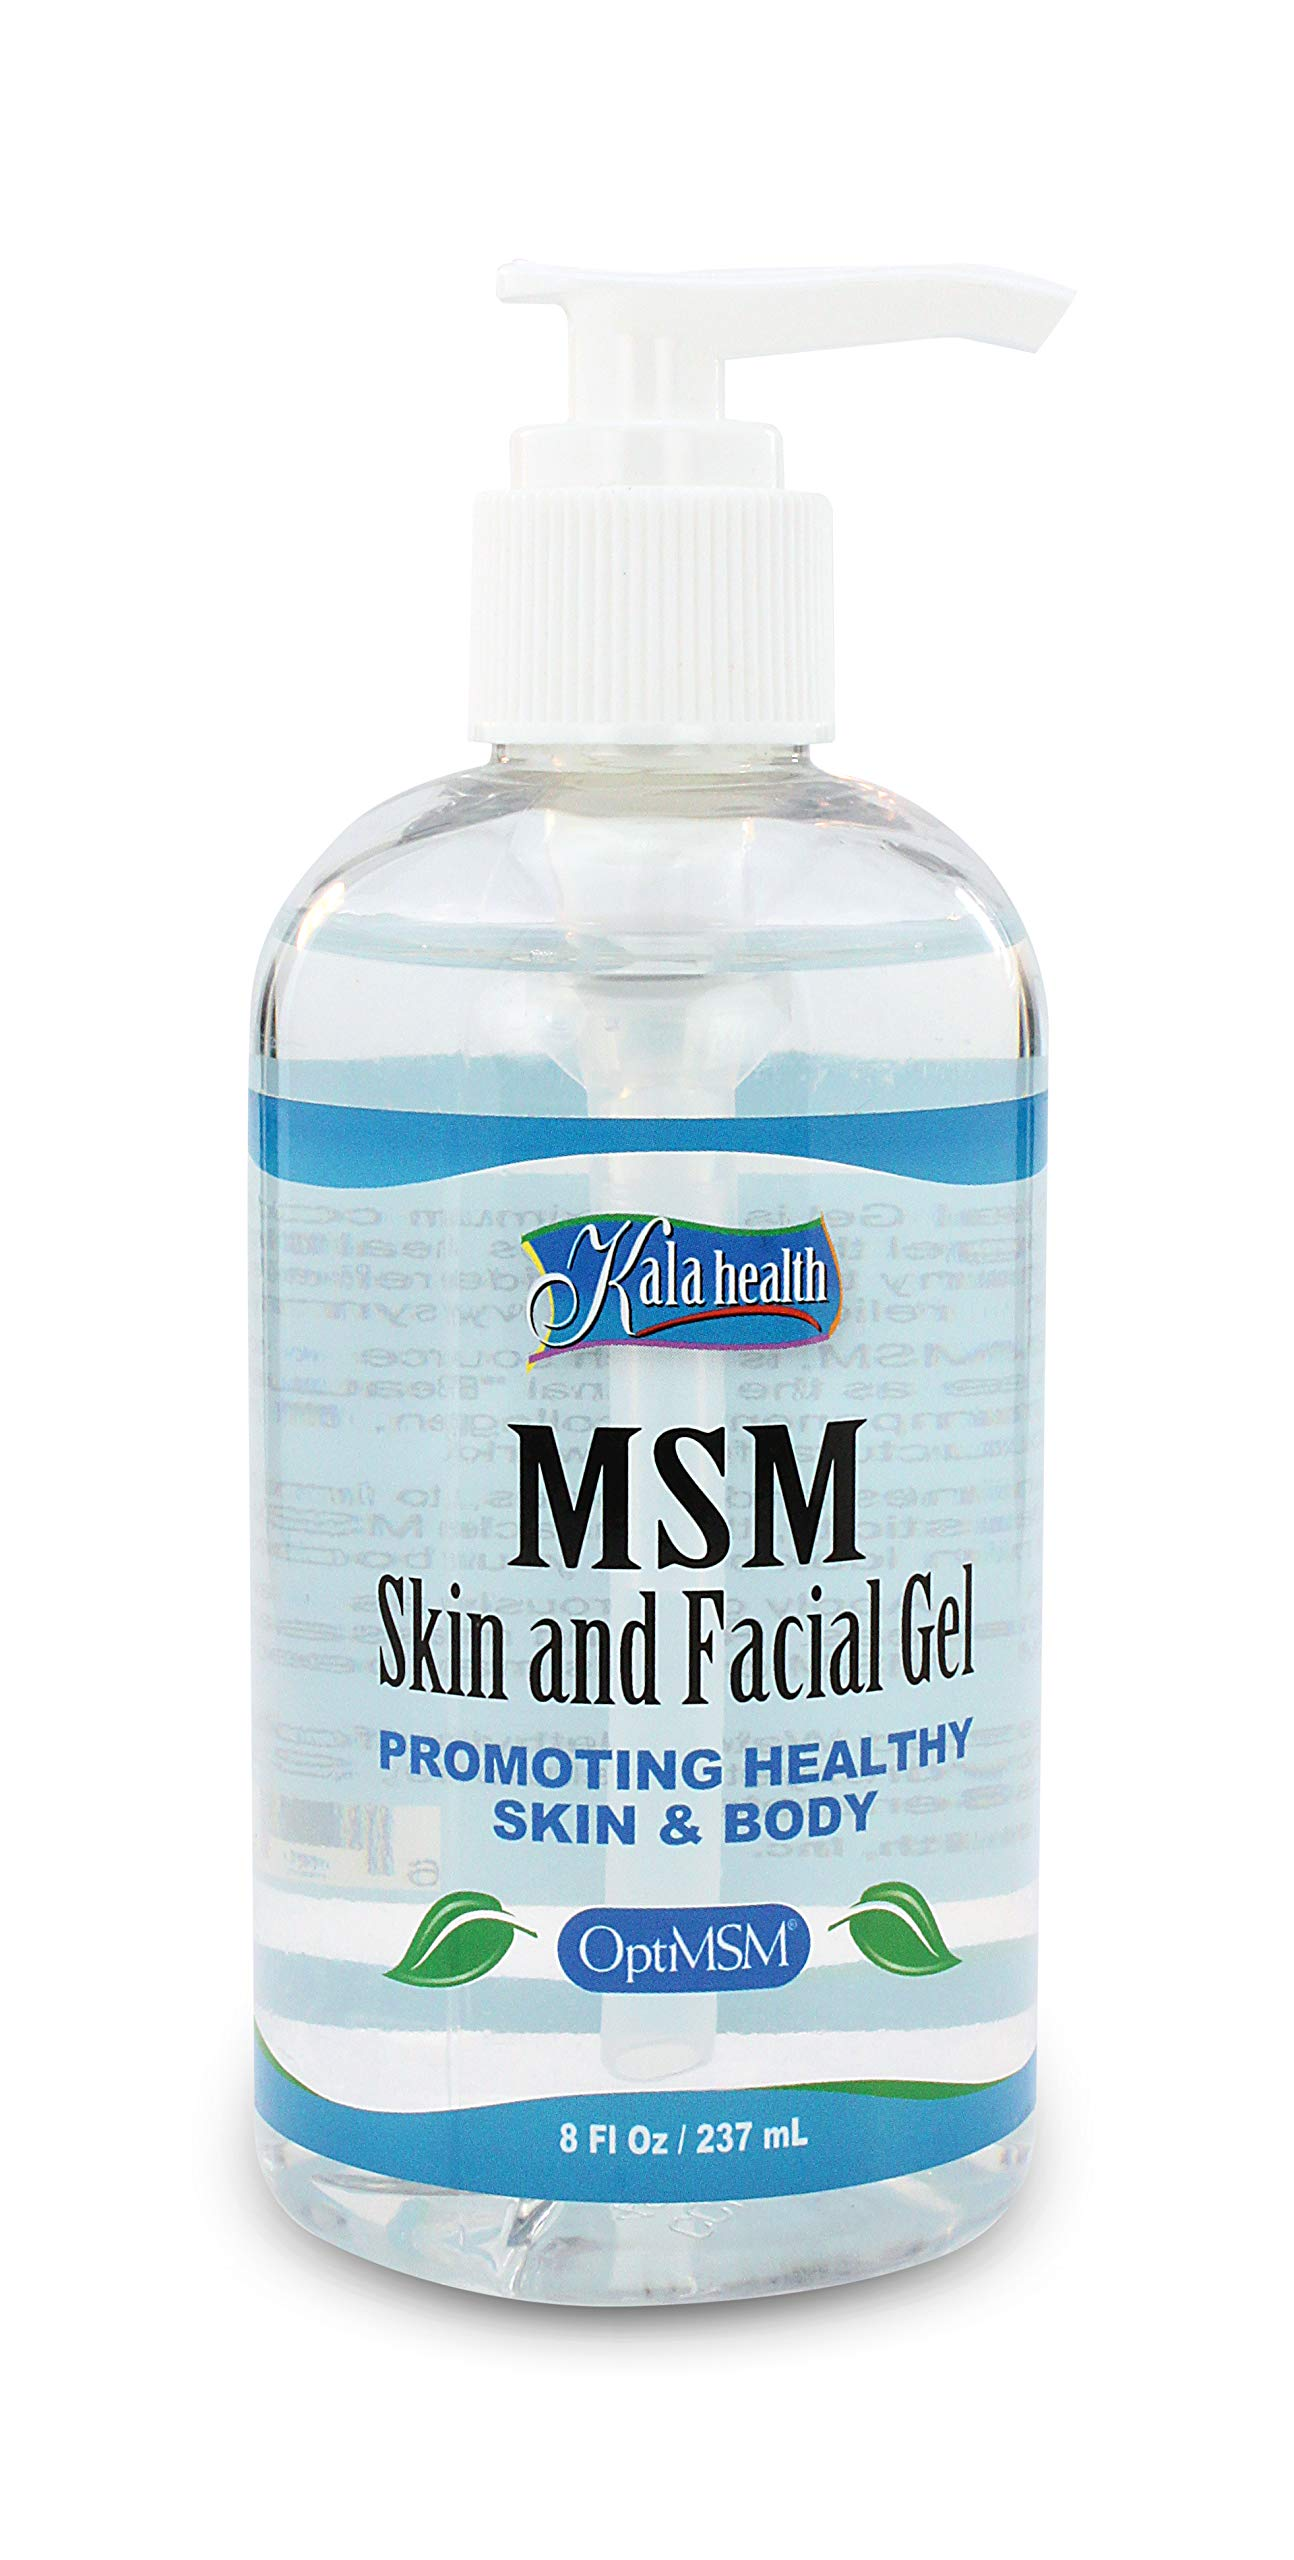 Kala Health MSMPure Maximum Strength Skin and Facial Gel Lotion, 8oz, for Soft, Smooth Healthy Glowing Skin, Softer Hair, Acne Treatment & Quickly Soothes Joints and Muscles